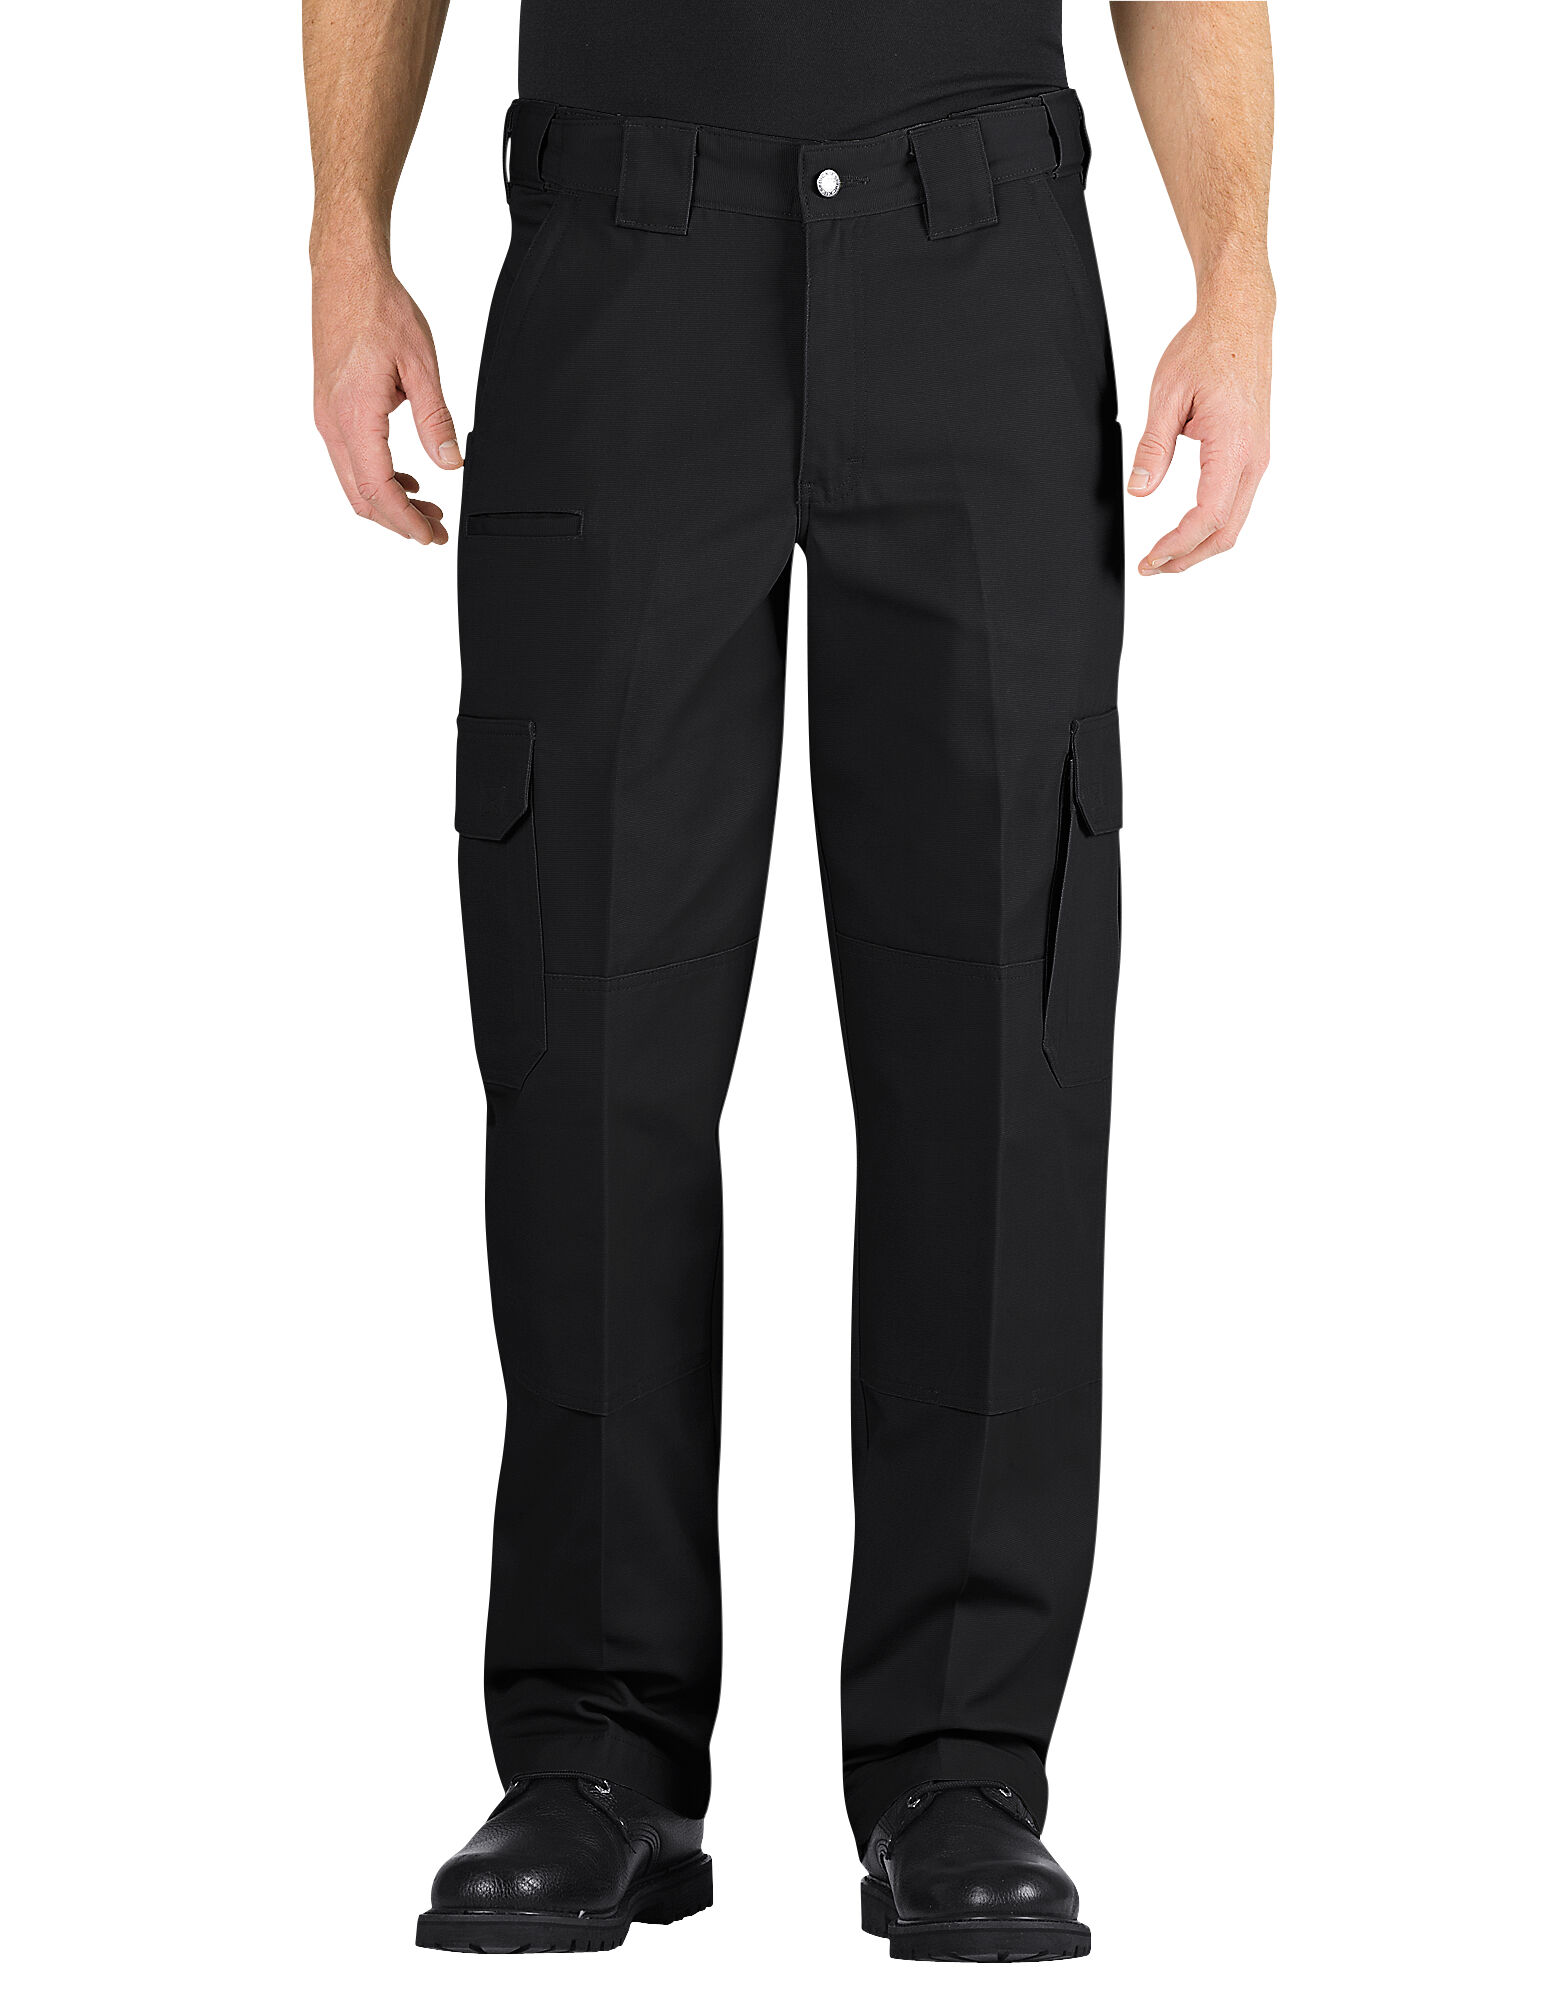 tactical pants relaxed fit straight leg dickies